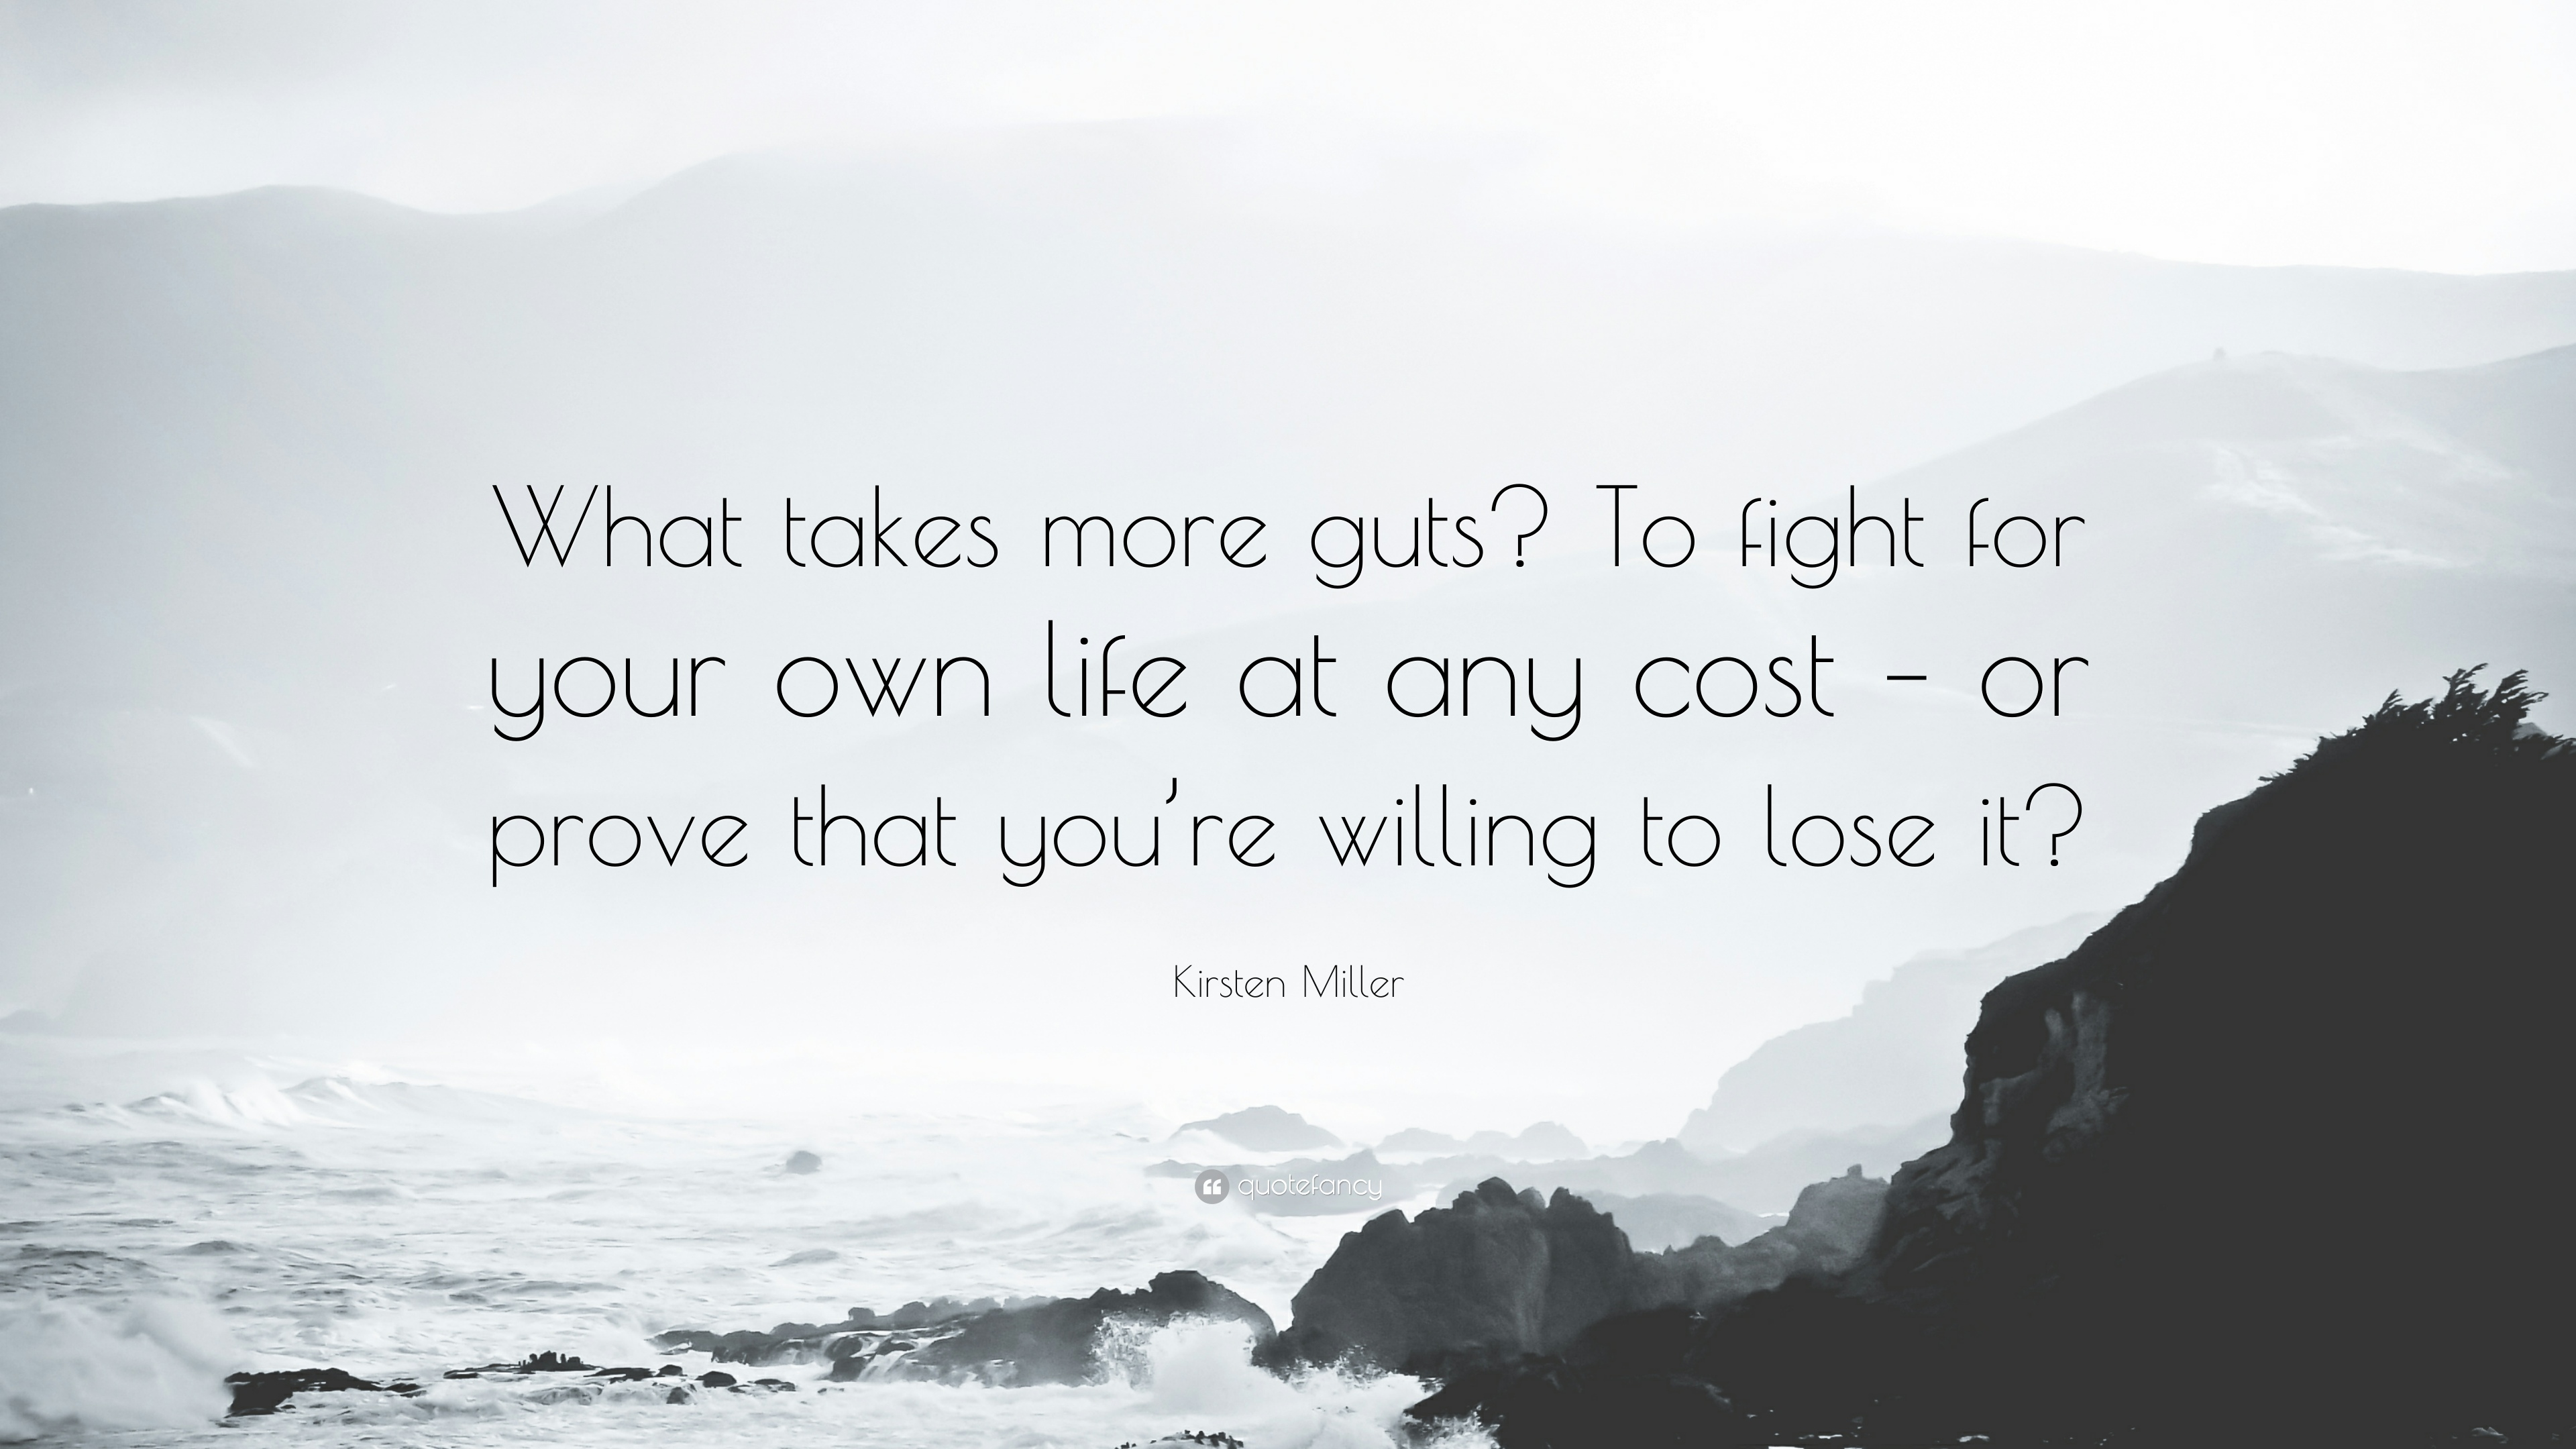 Kirsten Miller Quote: U201cWhat Takes More Guts? To Fight For Your Own Life